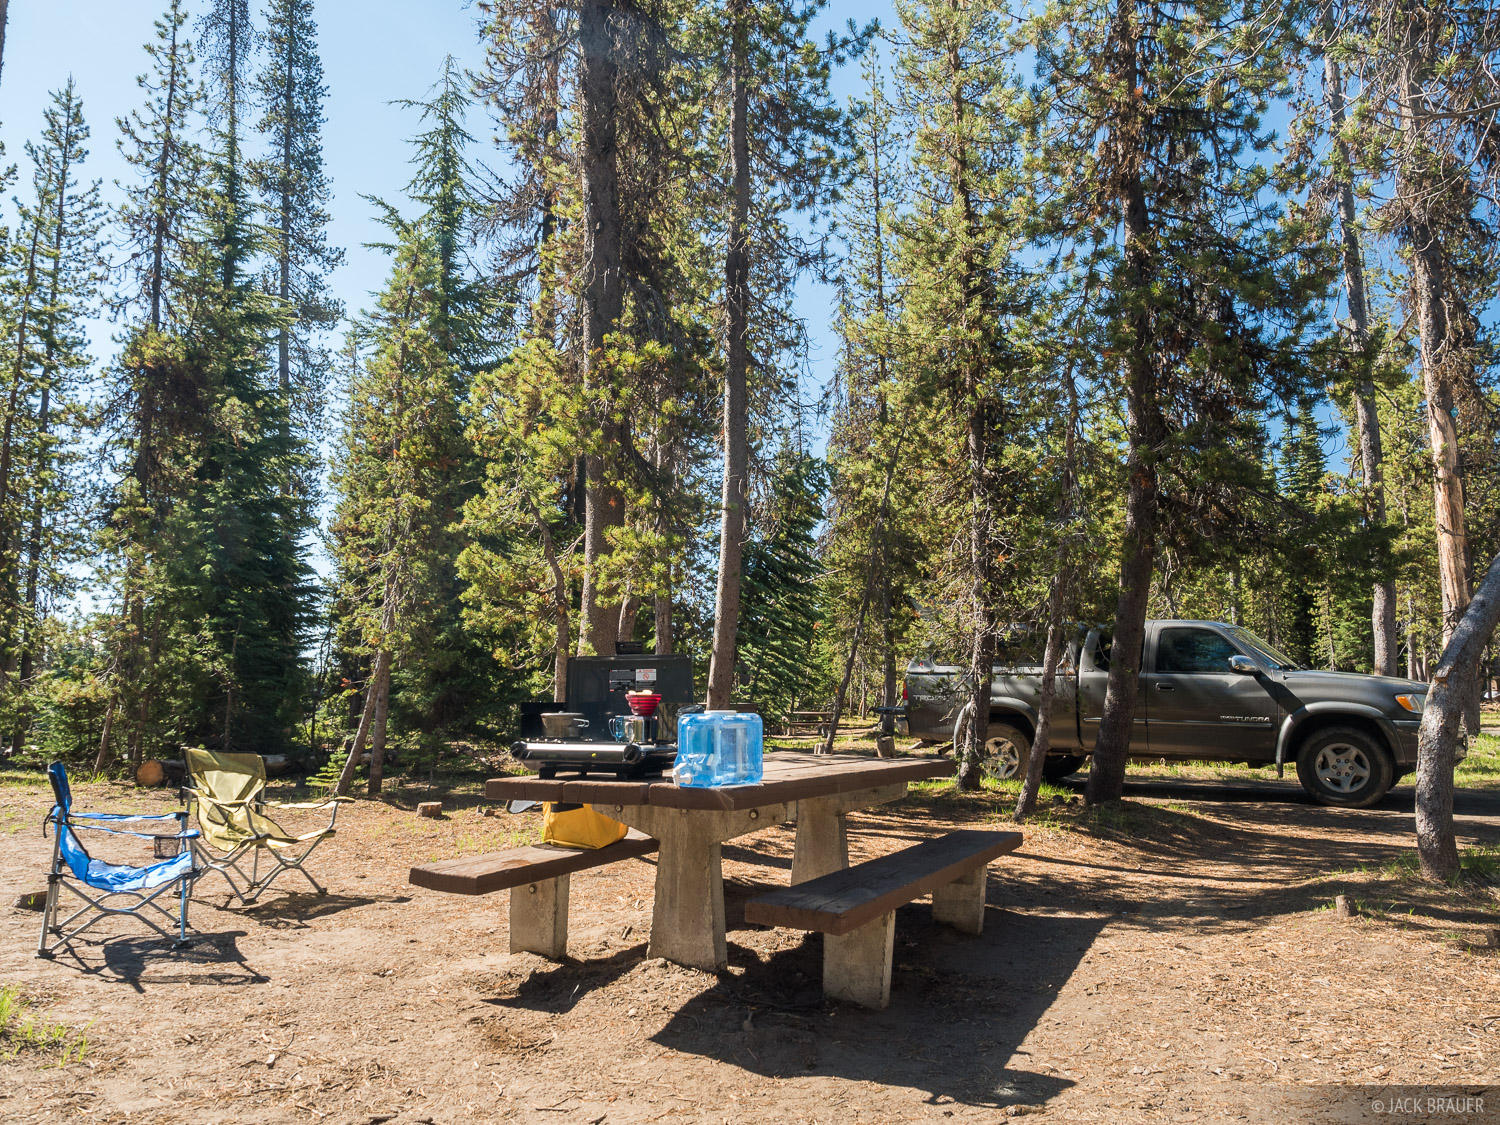 90 Days of Camping from Colorado to Alaska and back - June ...